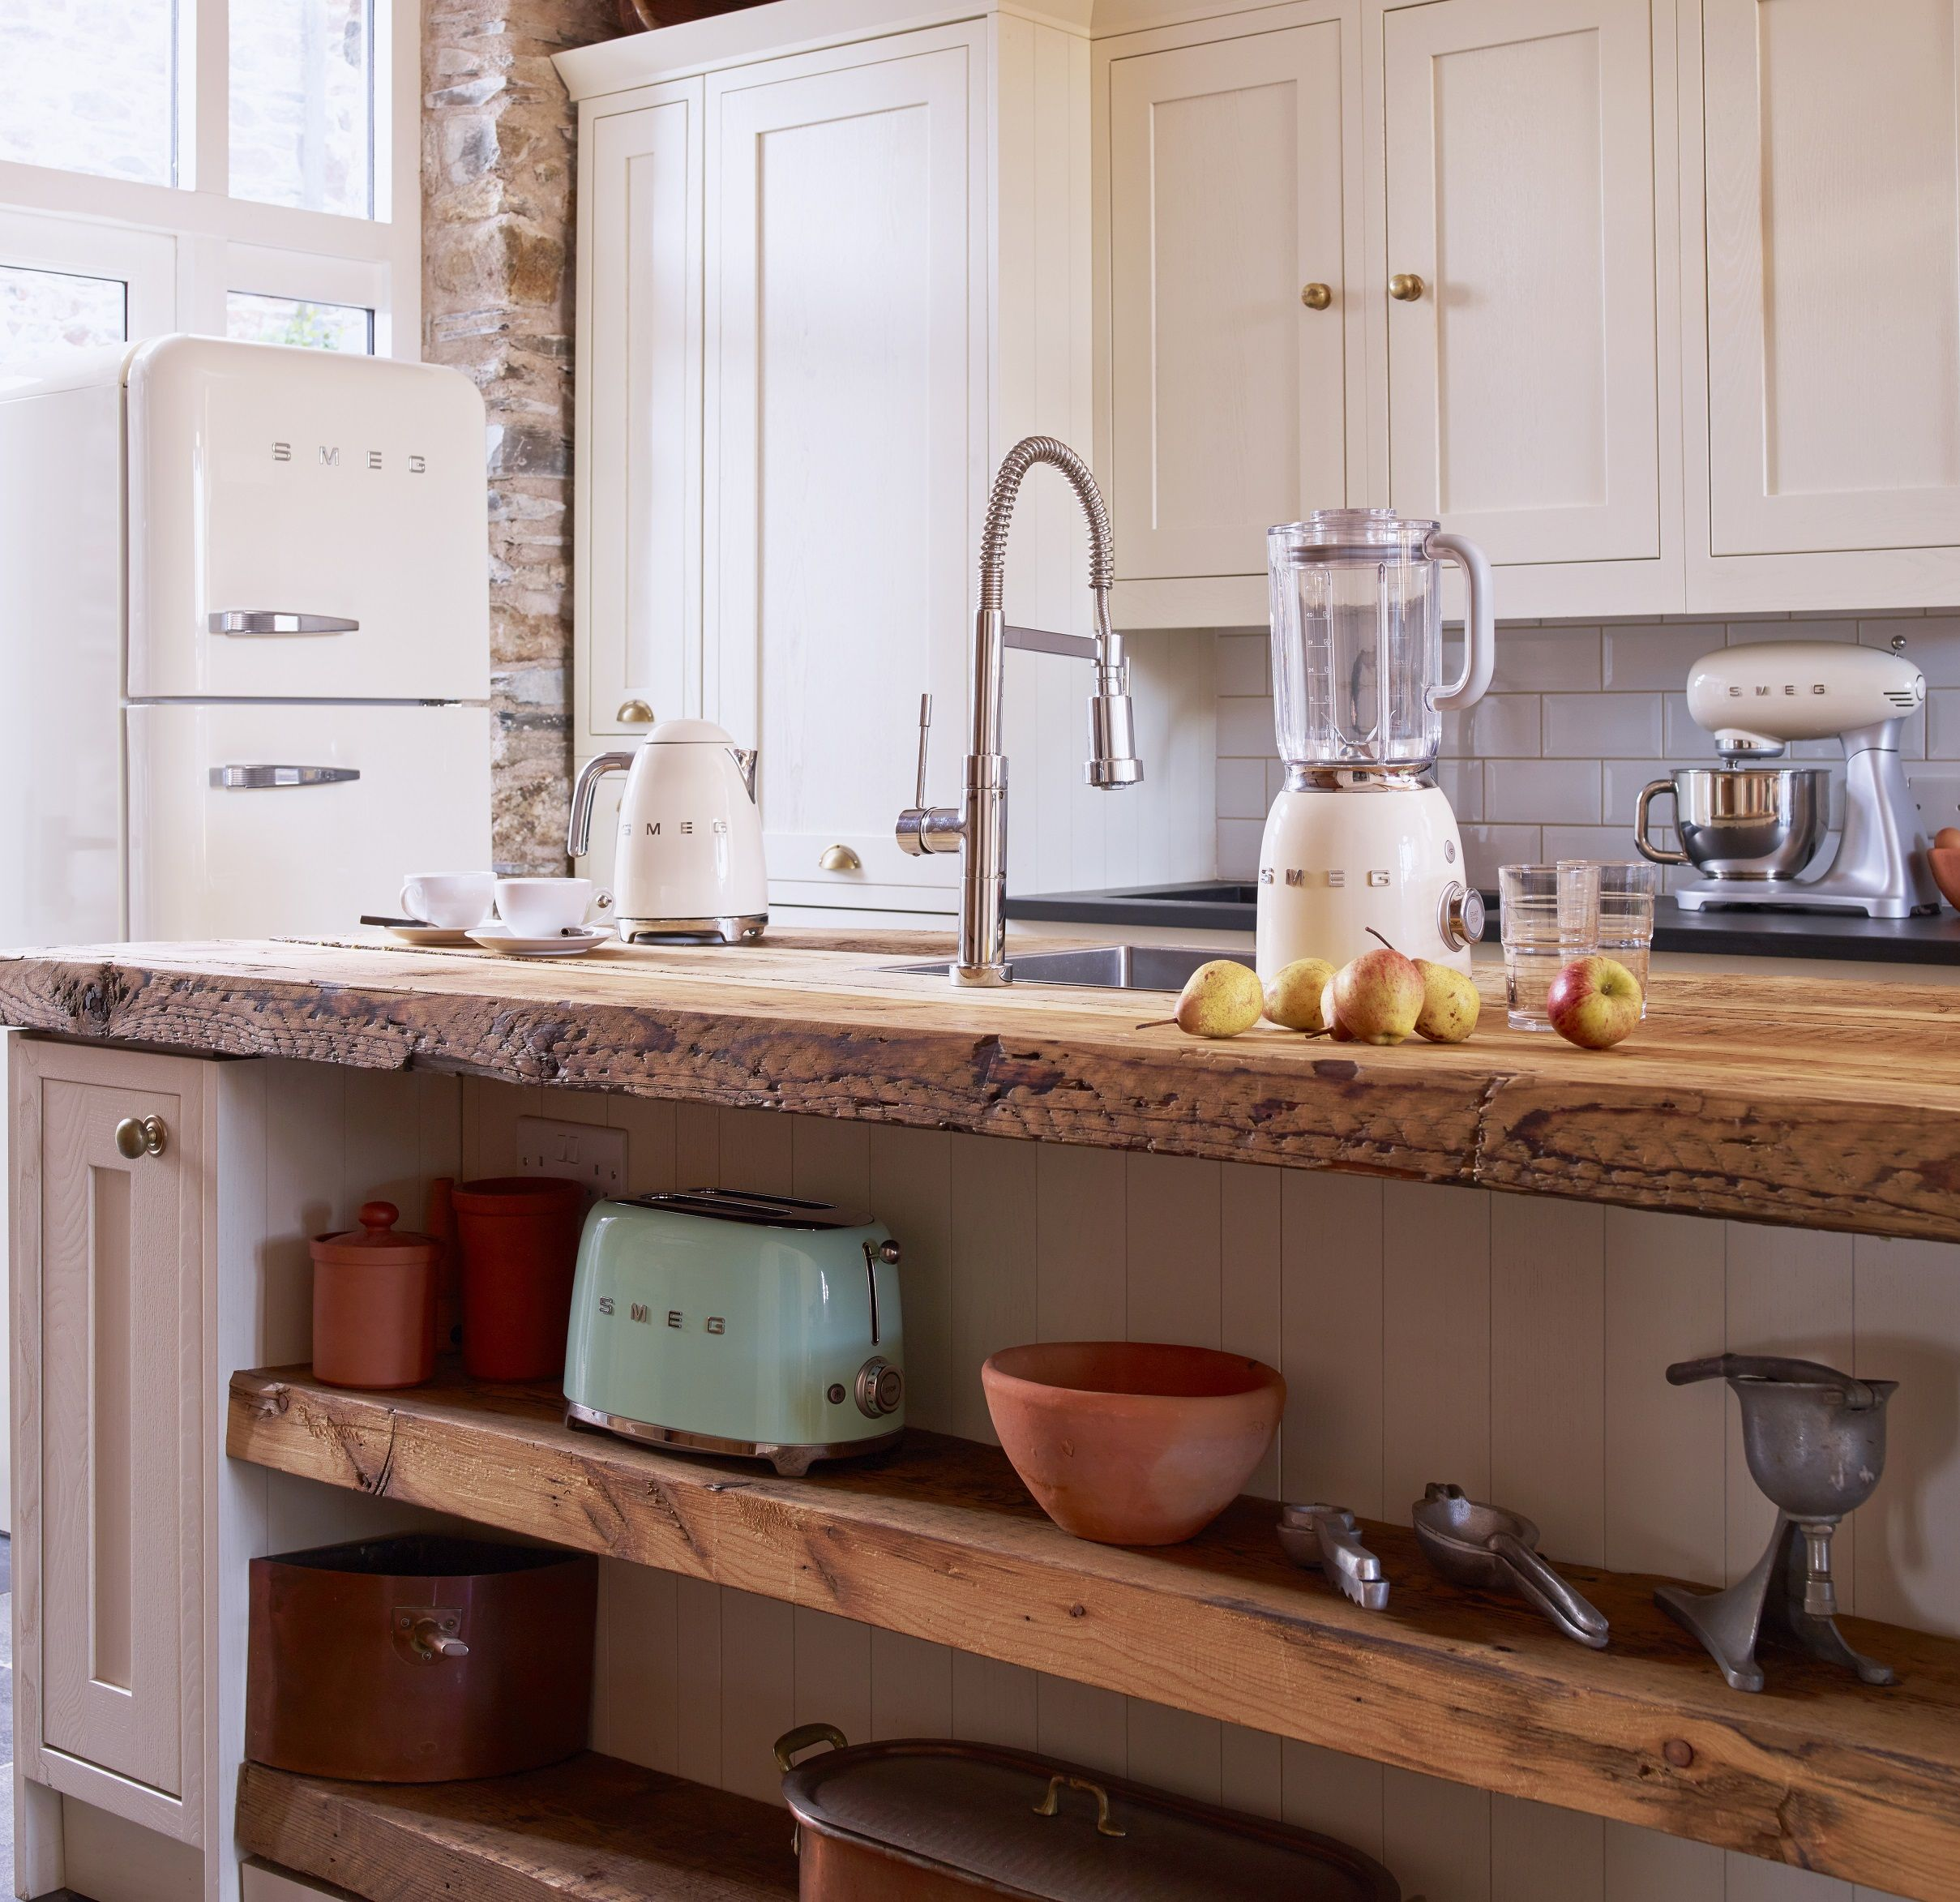 These Accessories From Smeg Look Very Much At Home In A Traditional Style Kitchen Kitchen Accessories Toaster Kitchen Country Kitchen Contemporary Kitchen